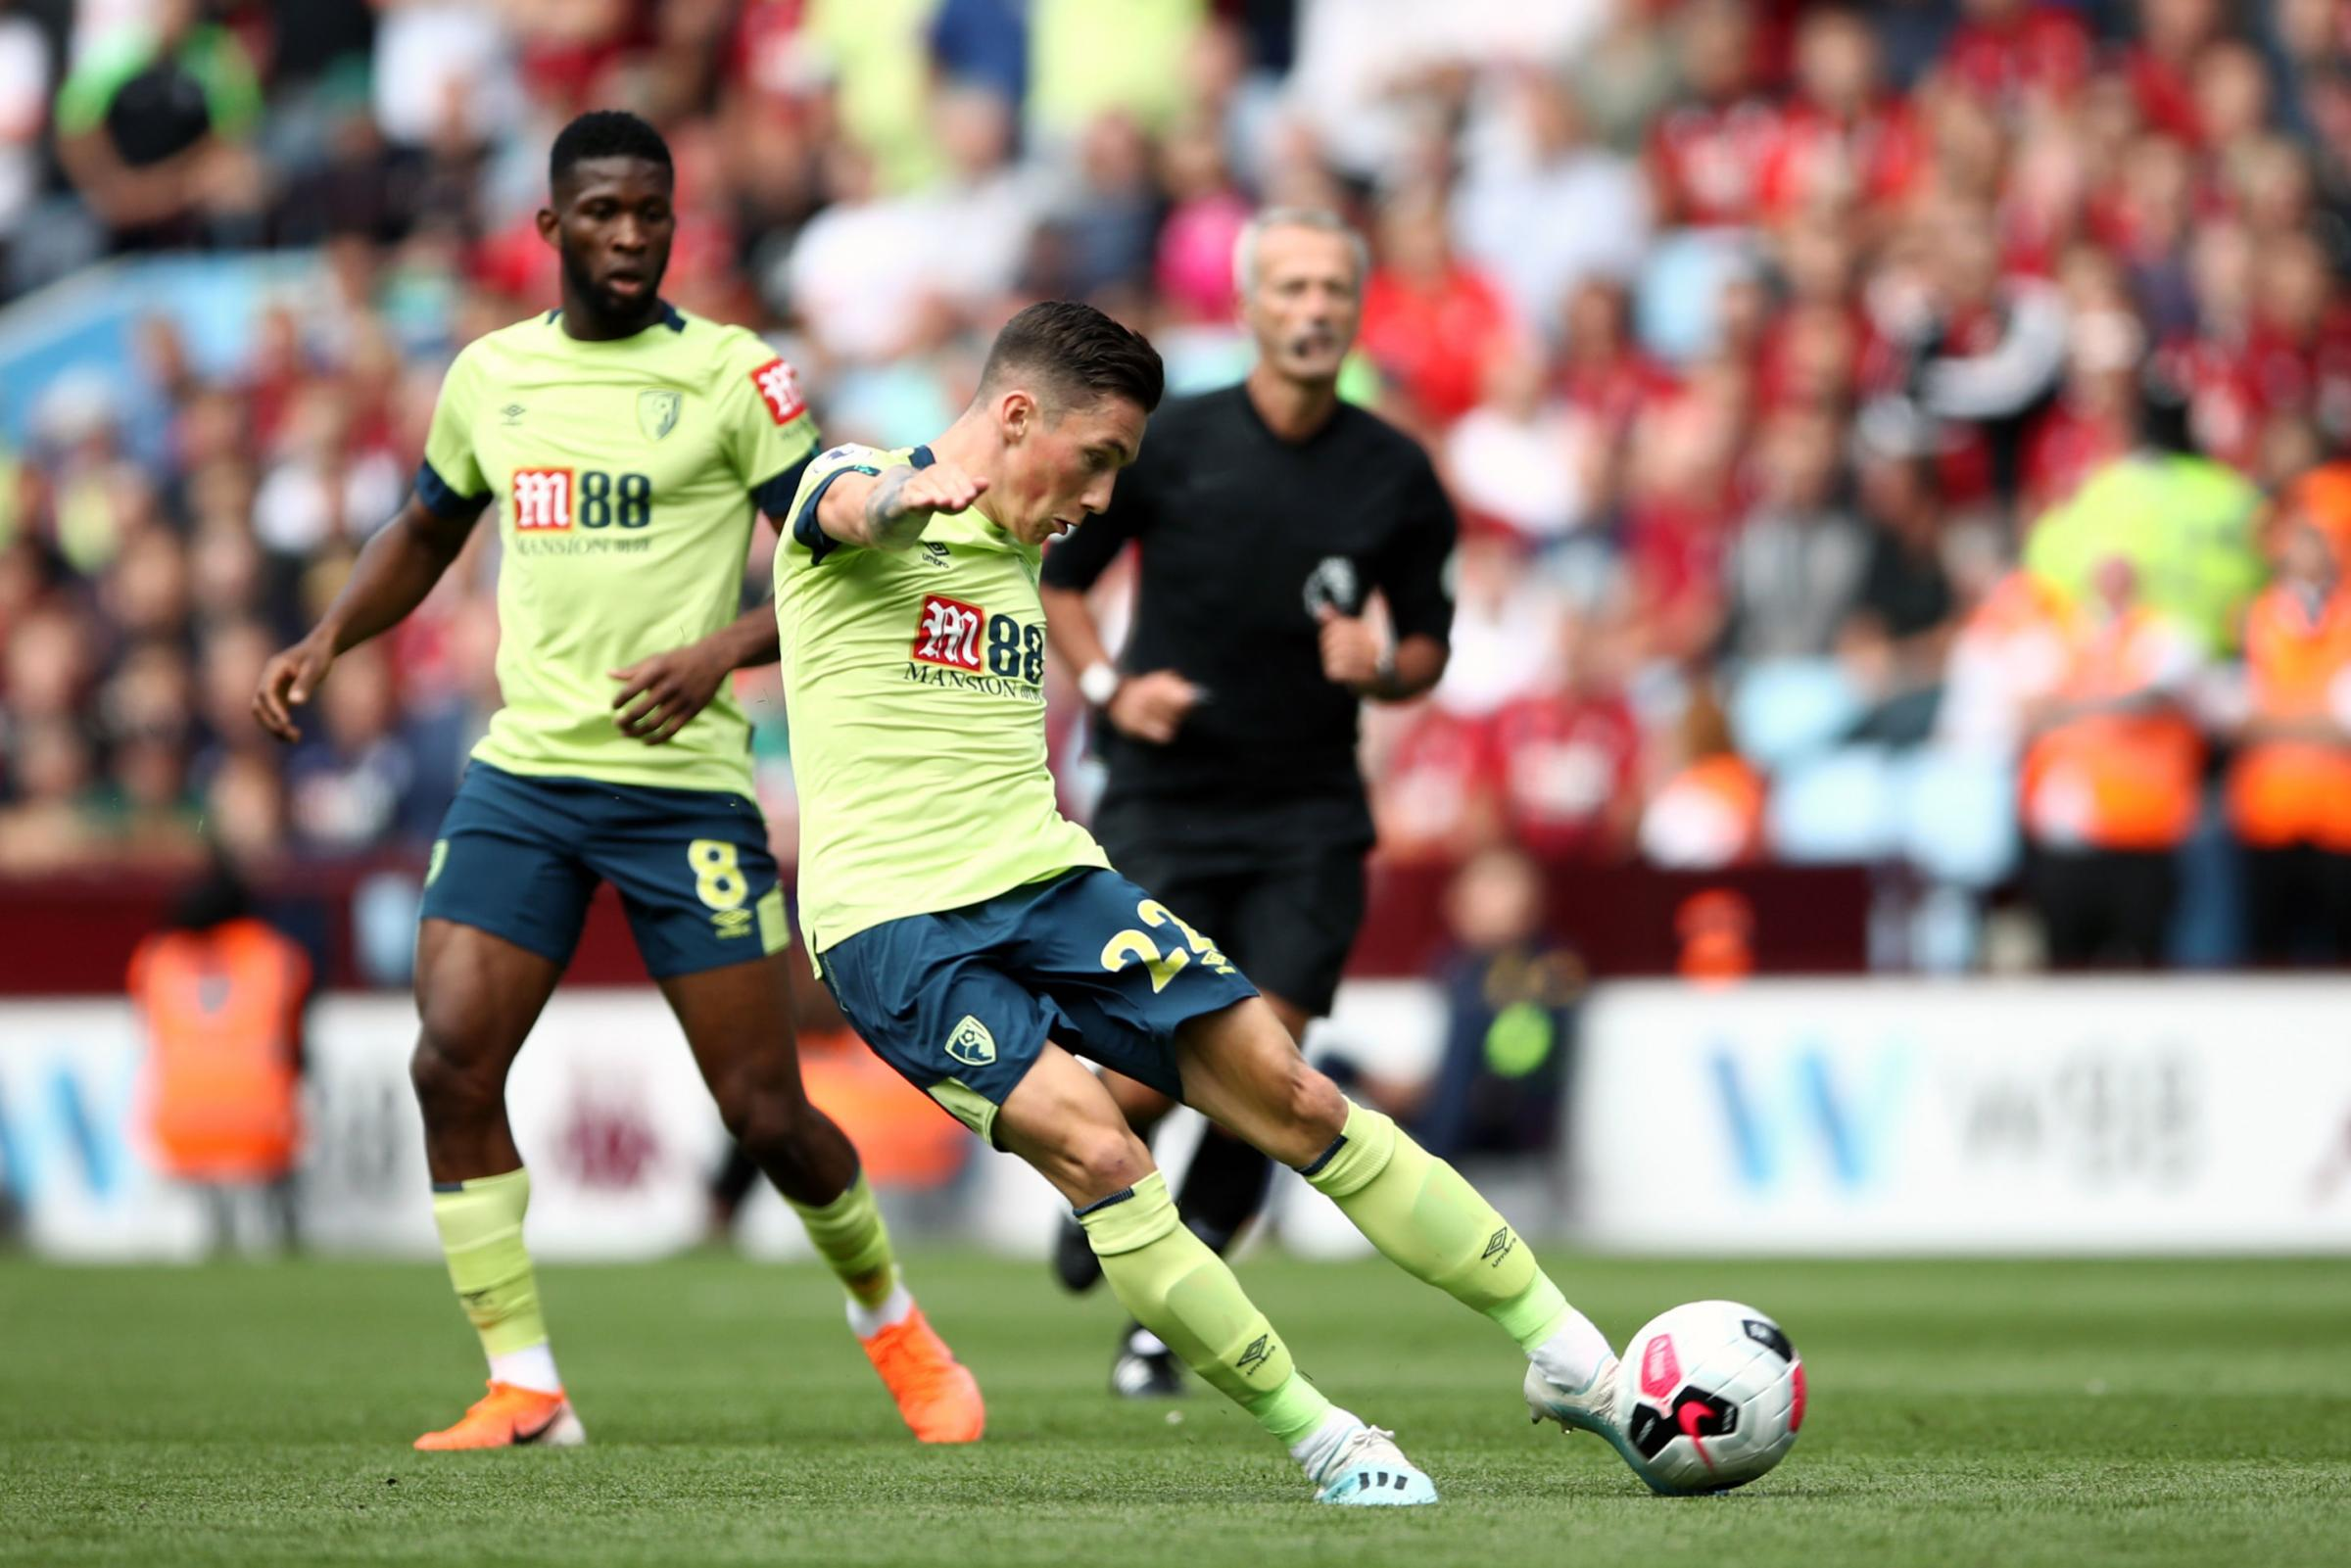 Liverpool academy manager watching AFC Bournemouth loanee Harry Wilson with interest